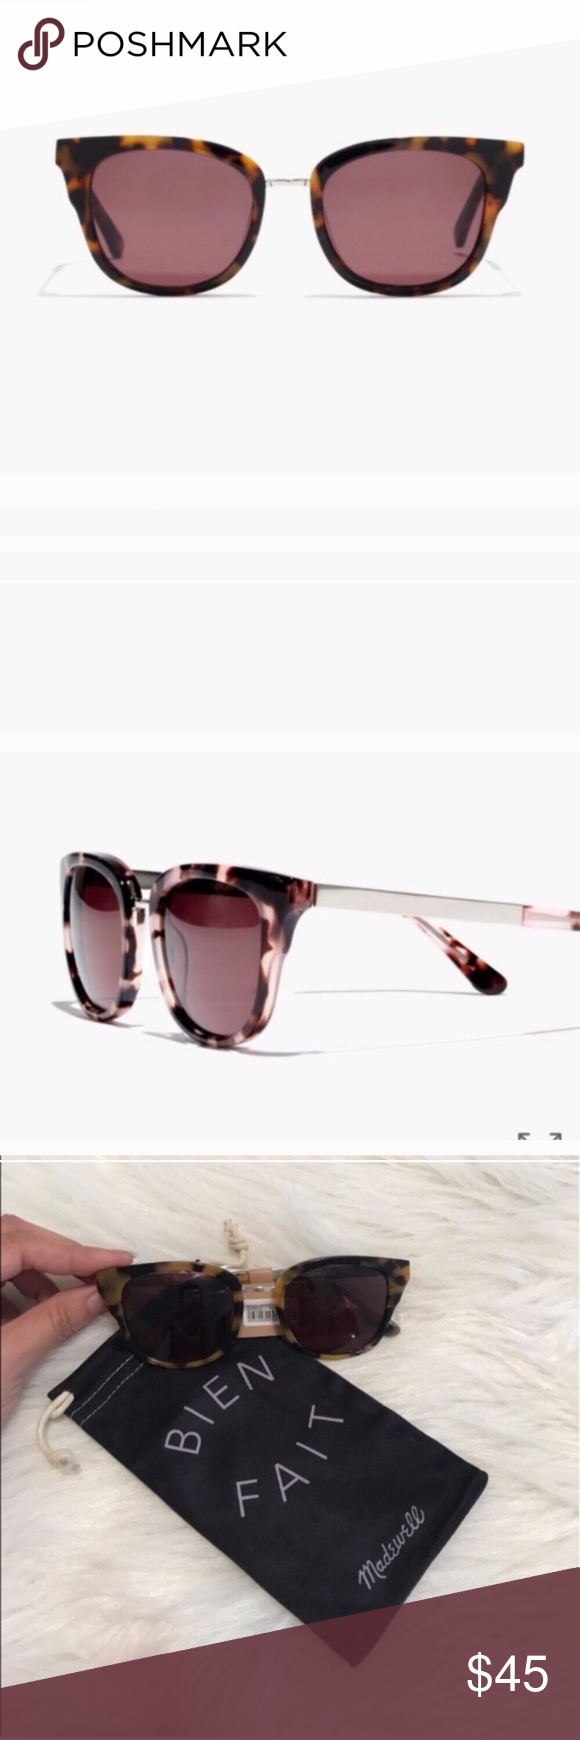 1f4d31ee5e MADEWELL PLAYLIST SUNGLASSES Beautiful and stylish! NWT! Bold acetate frame  with a touch of metal at the bridge. So universally flattering.